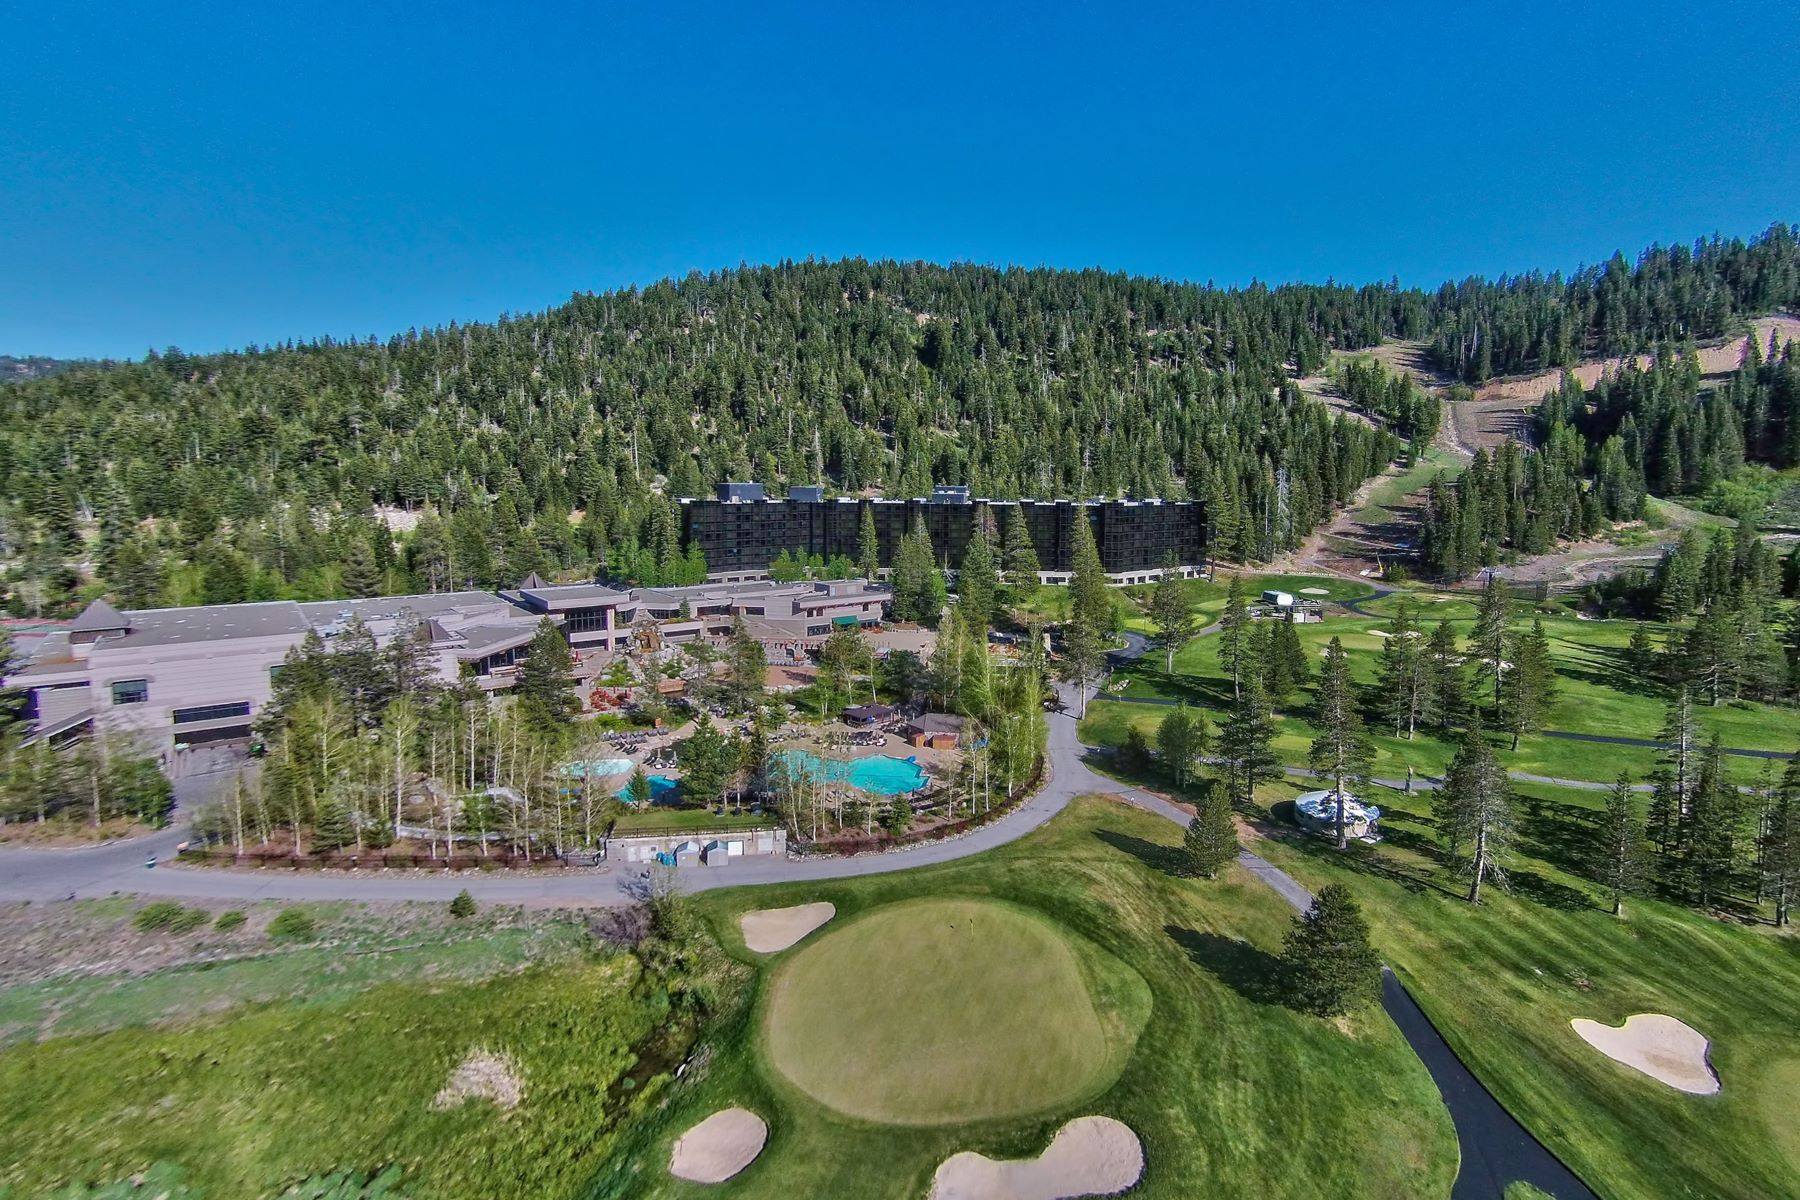 Property for Active at 400 Squaw Creek Road #901/903 Olympic Valley, California 96146 United States